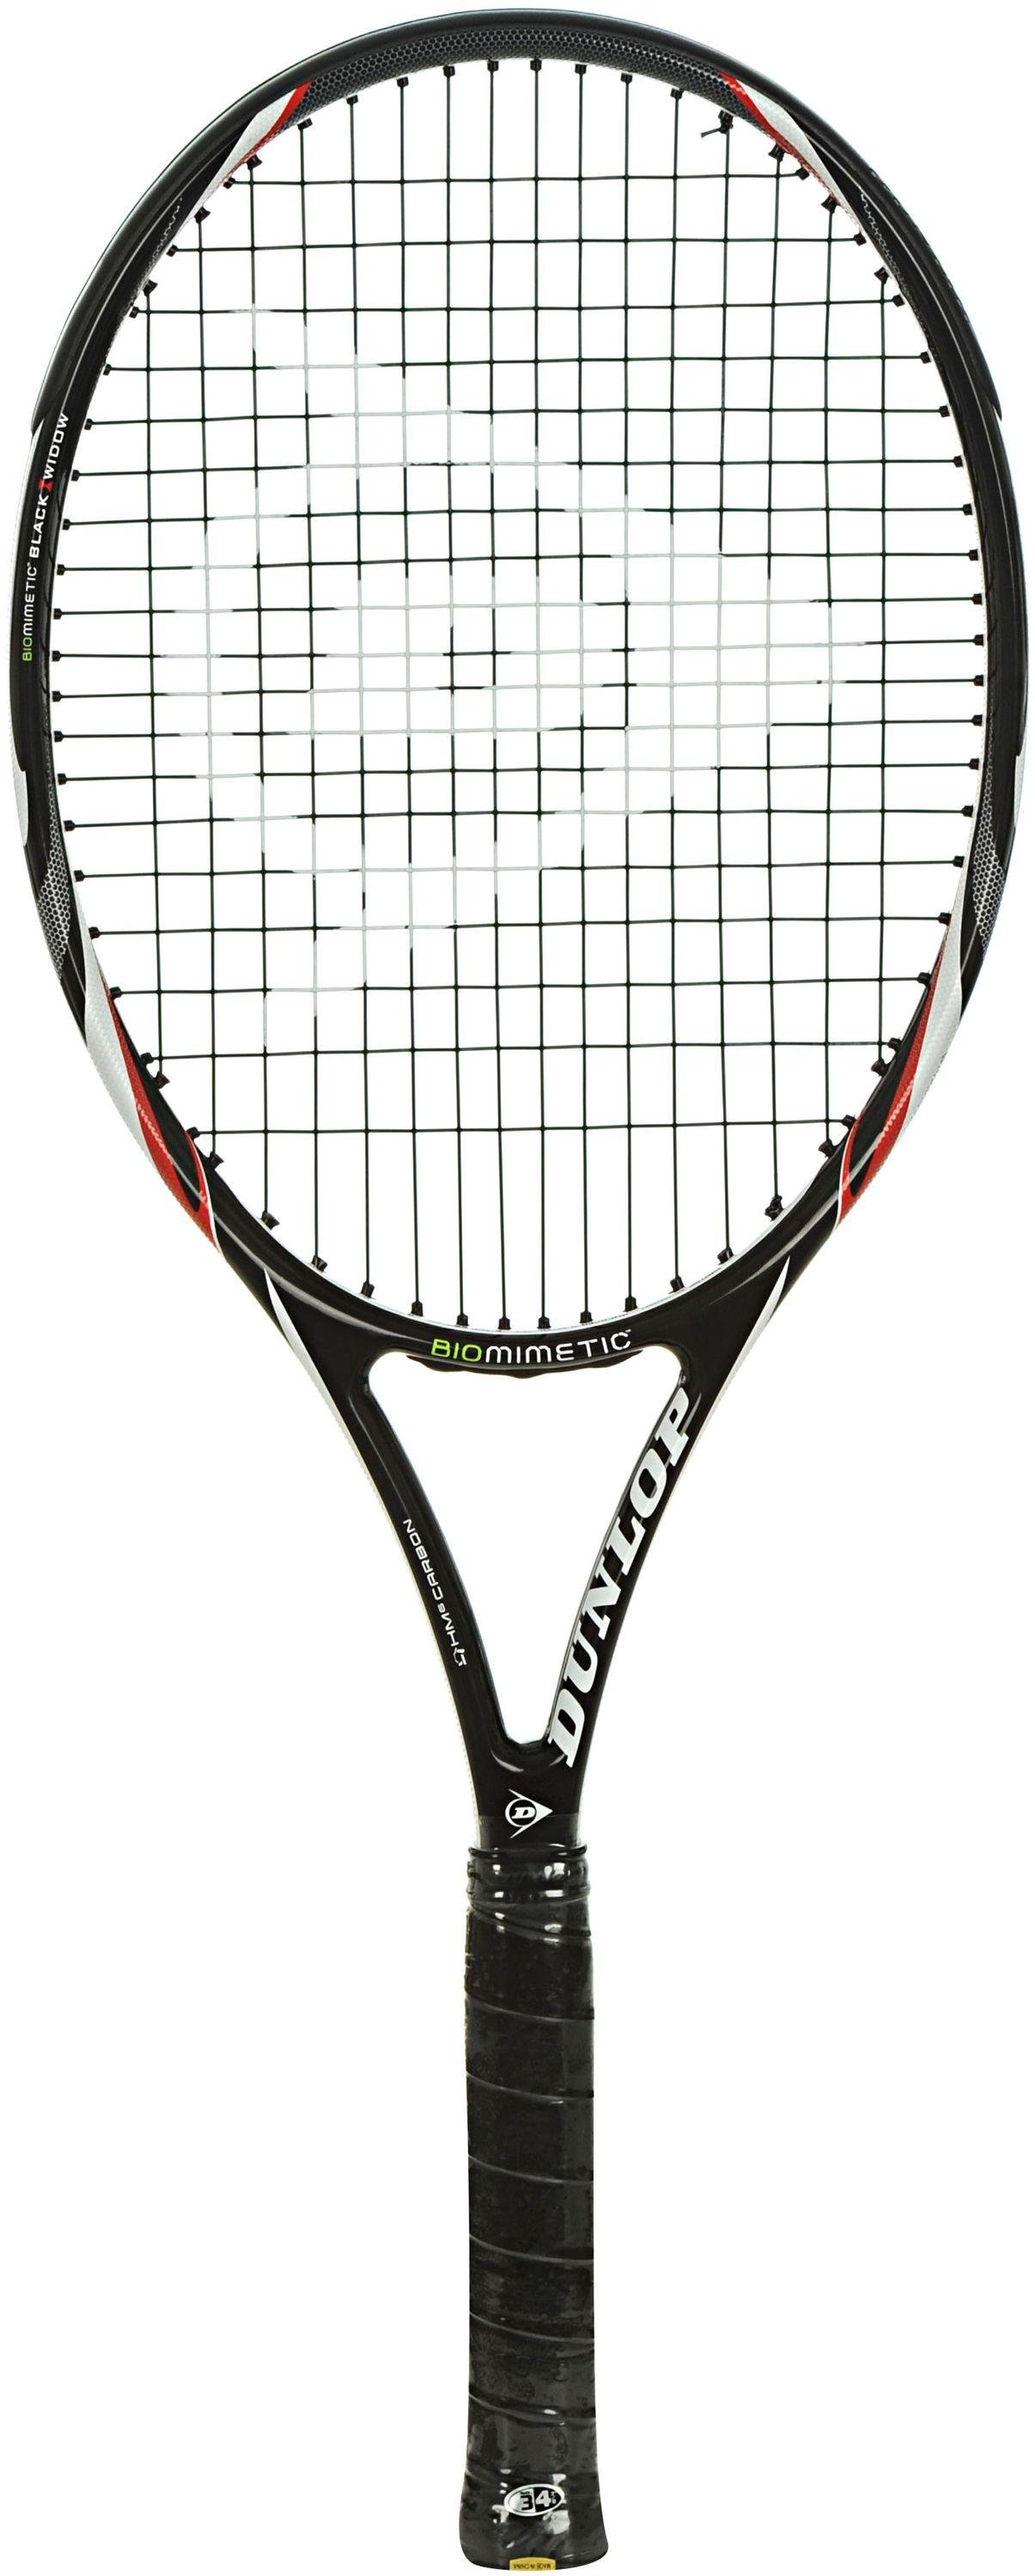 dunlop-biomimetic-black-widow-grip-4-tennis-racket